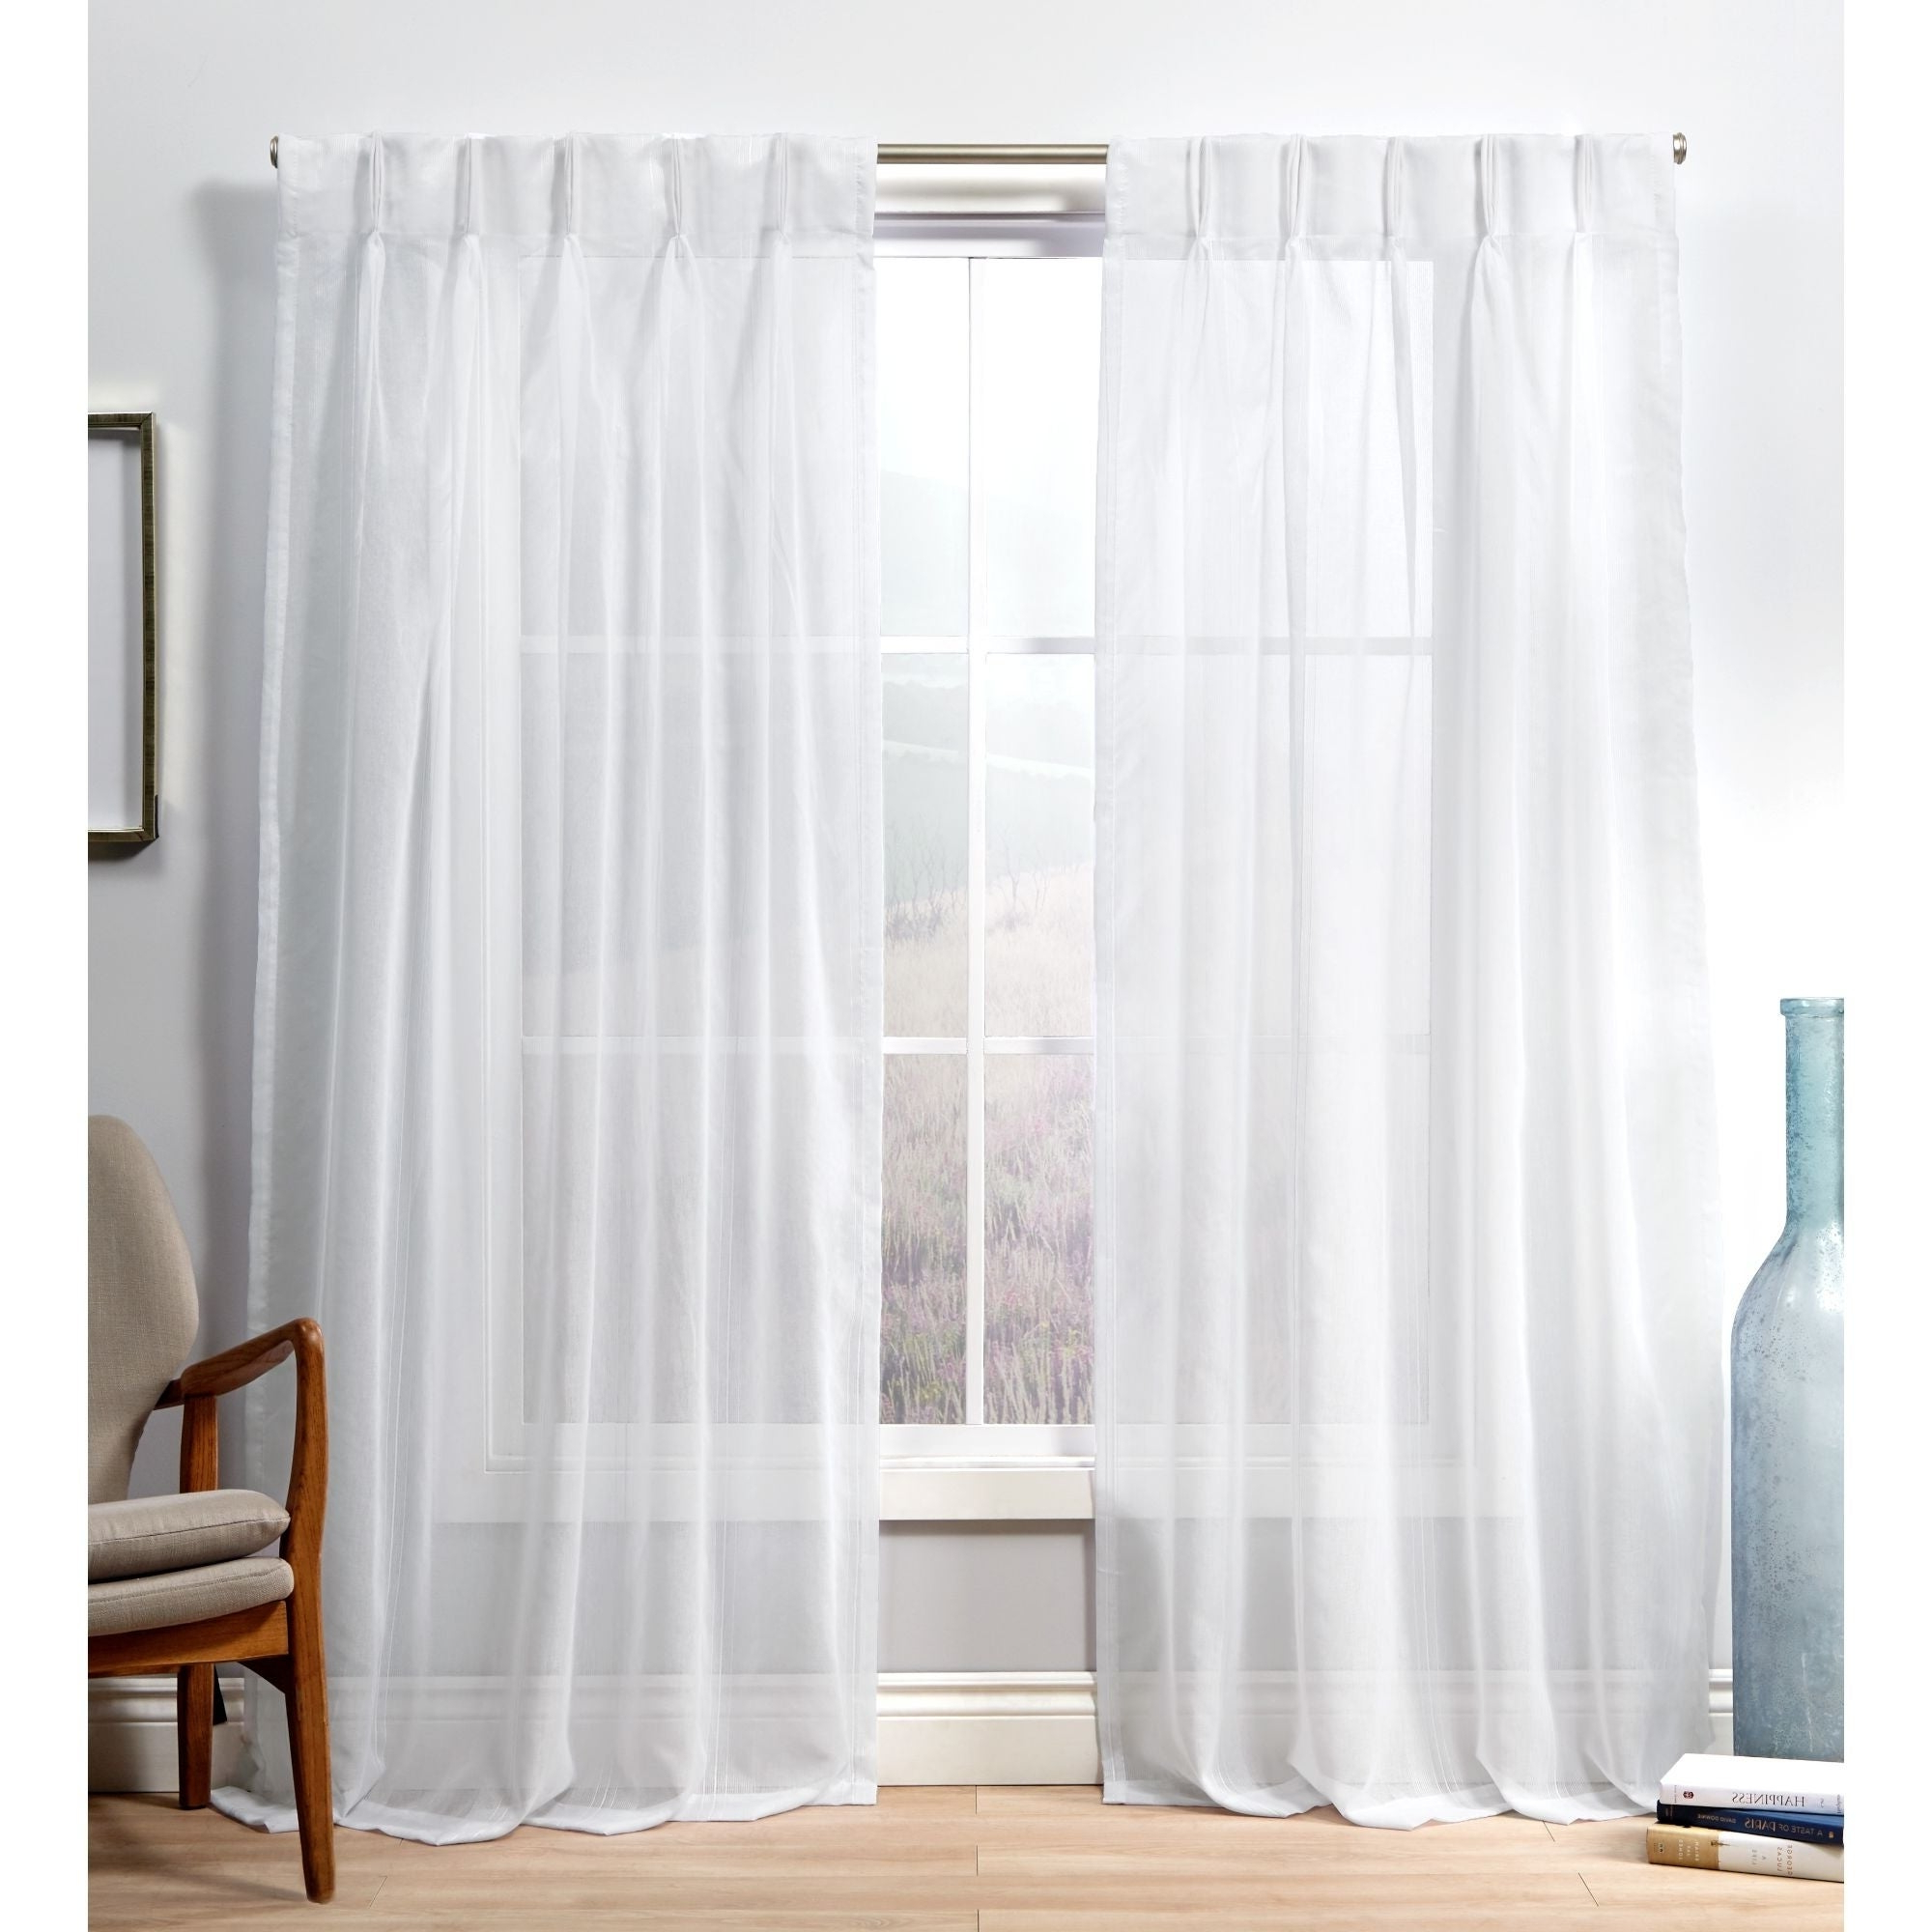 Popular Ati Home Penny Sheer Pinch Pleat Curtain Panel Pair For Double Pinch Pleat Top Curtain Panel Pairs (View 5 of 20)